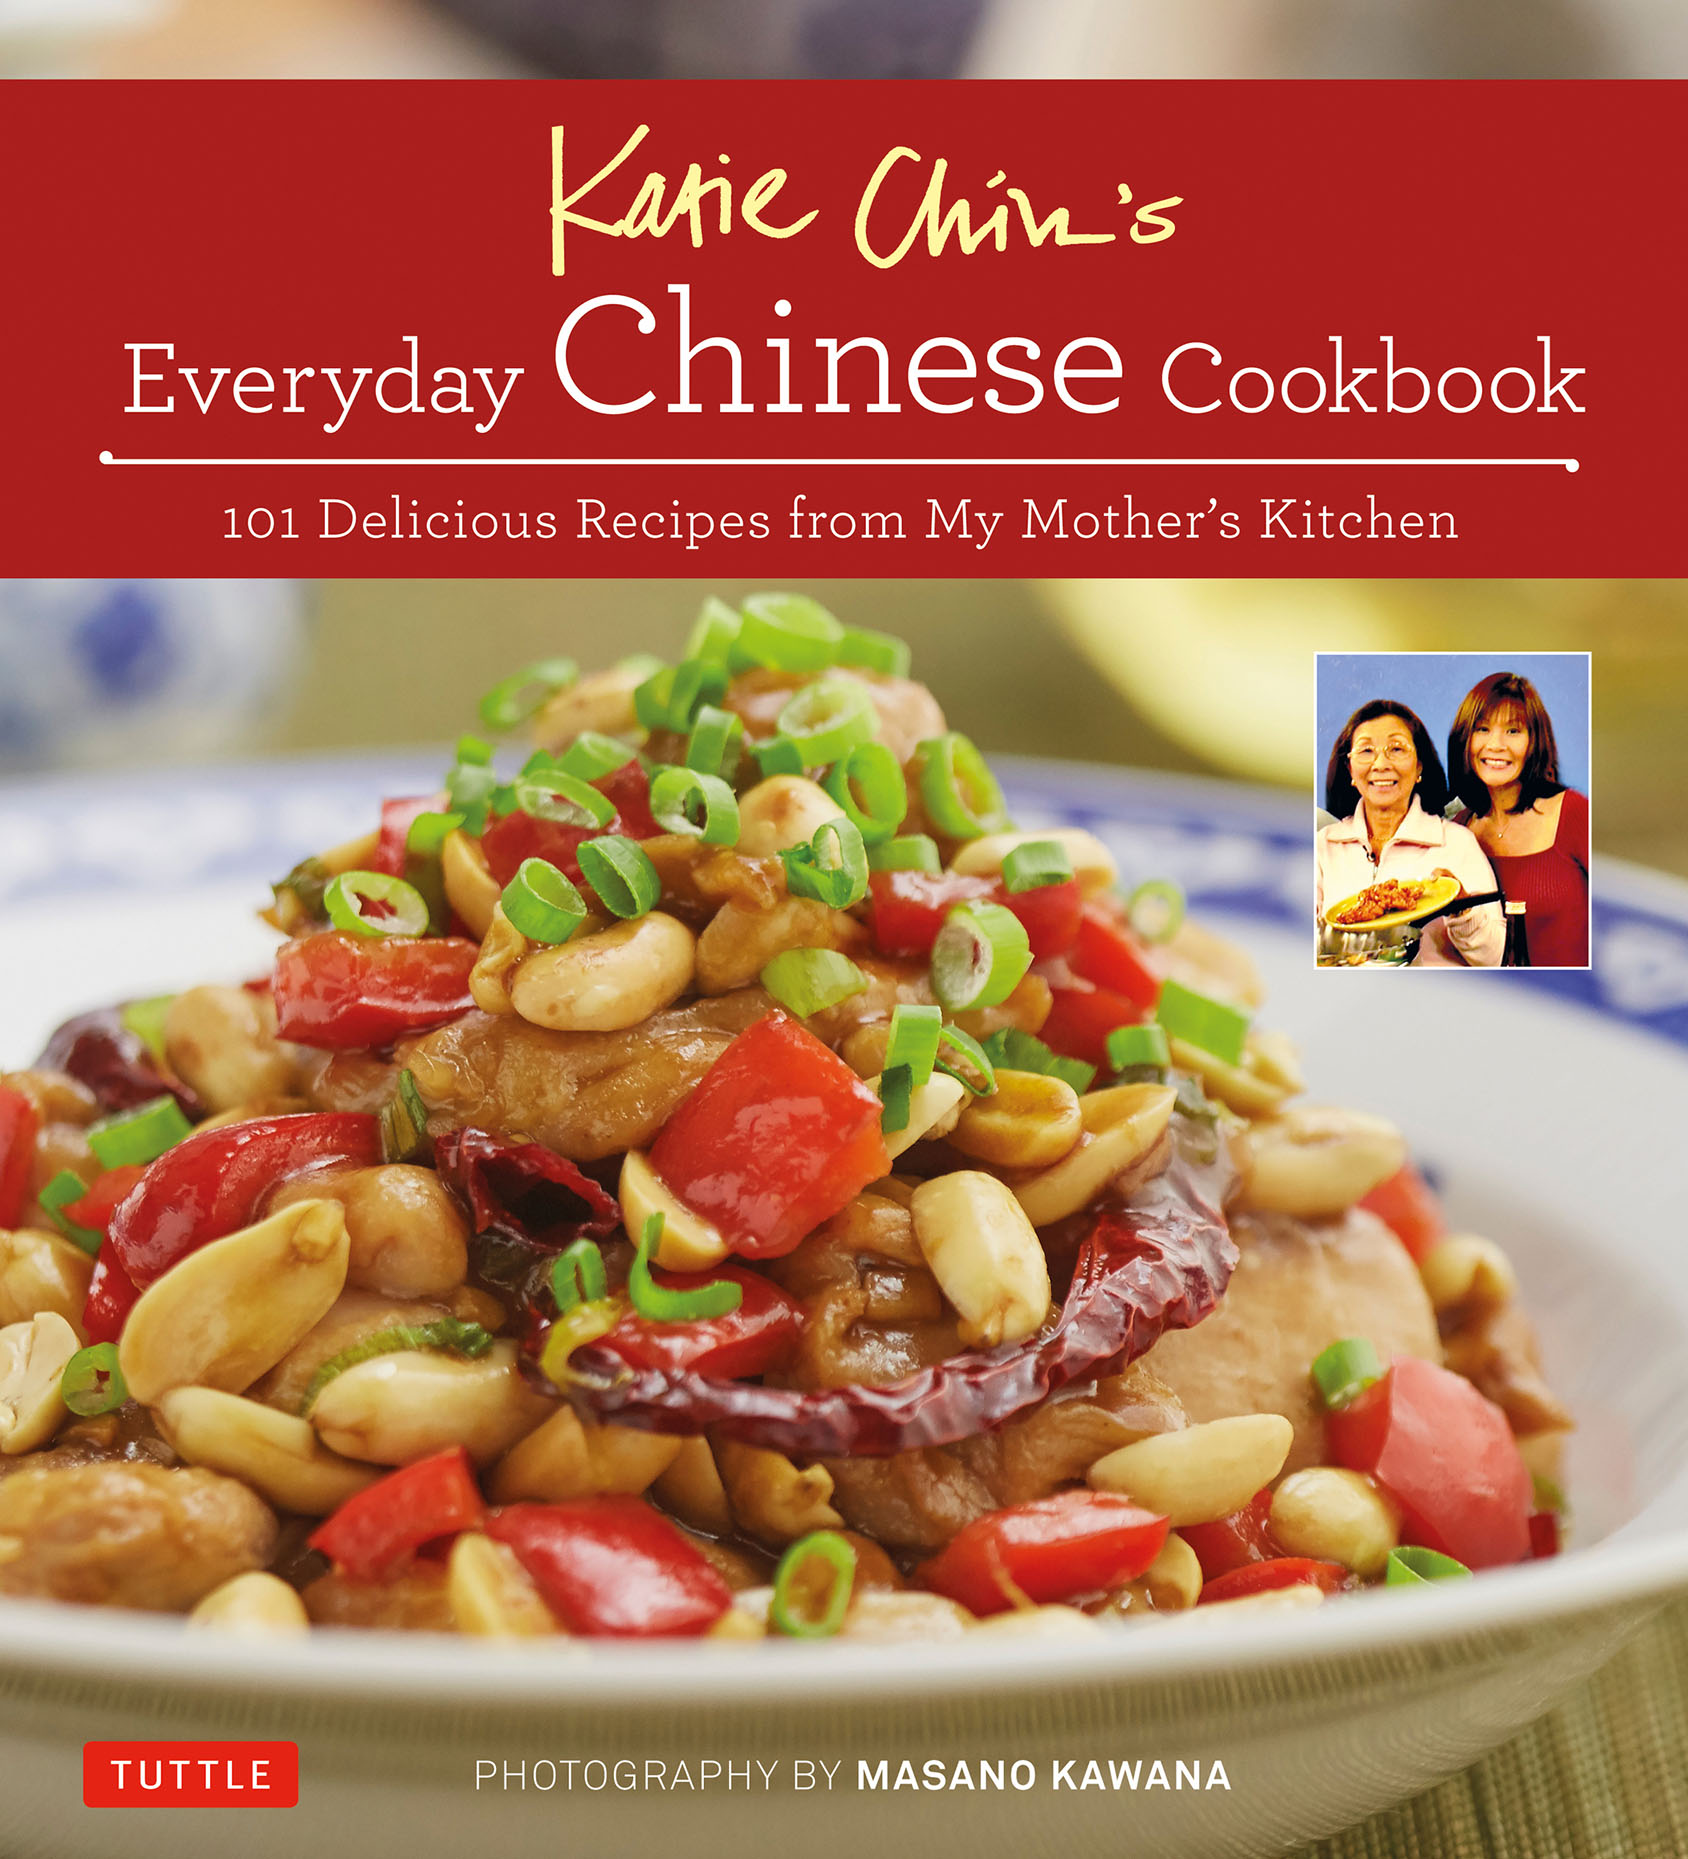 Everyday chinese cookbook by katie chin asian lifestyle design in most asian families food and cooking are very much central to our lives we celebrate many special occasions using food as symbolism buycottarizona Images